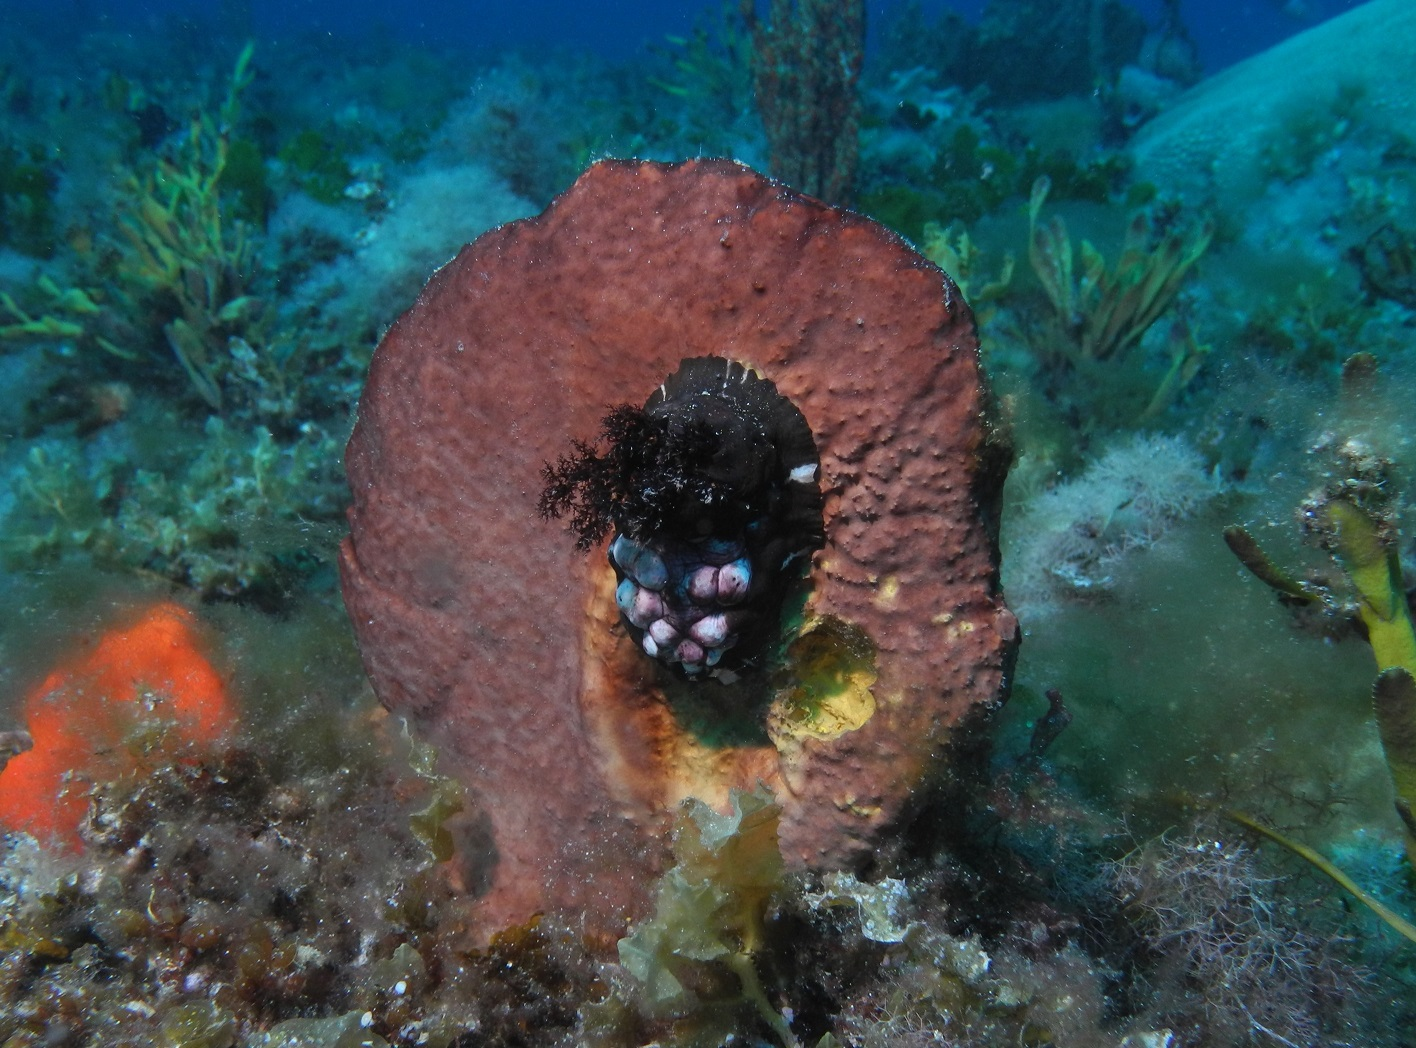 Ceto cuvieria at Coral Gardens 2. Photo by Paul Day